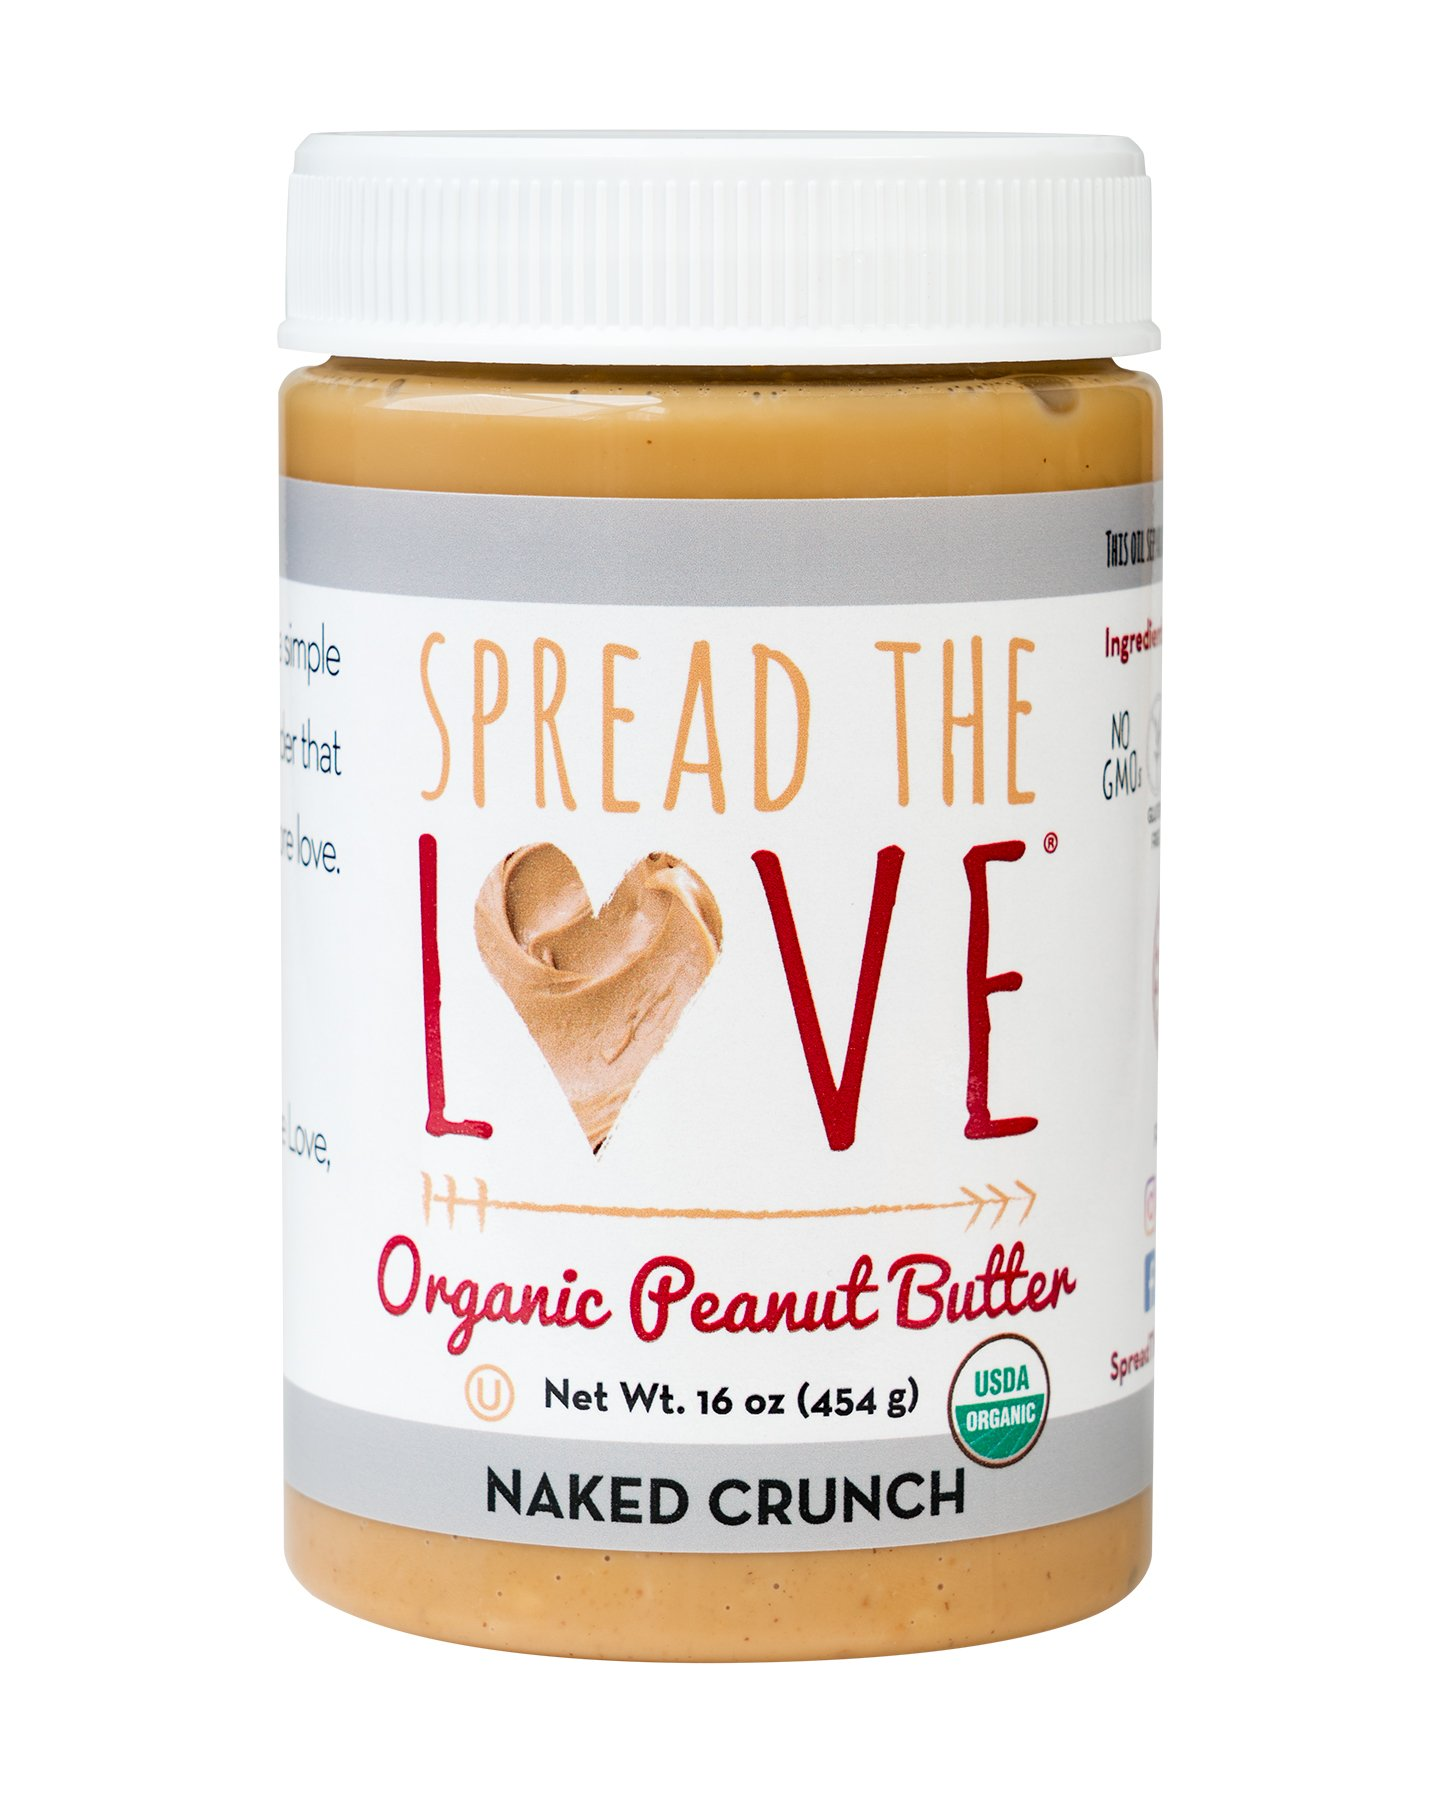 Spread The Love NAKED CRUNCH Organic Peanut Butter, 16 Ounce All Natural, Vegan, Gluten Free, Creamy, Dry Roasted, No Added Salt or Sugar, No Palm Oil, Made in California by Spread The Love